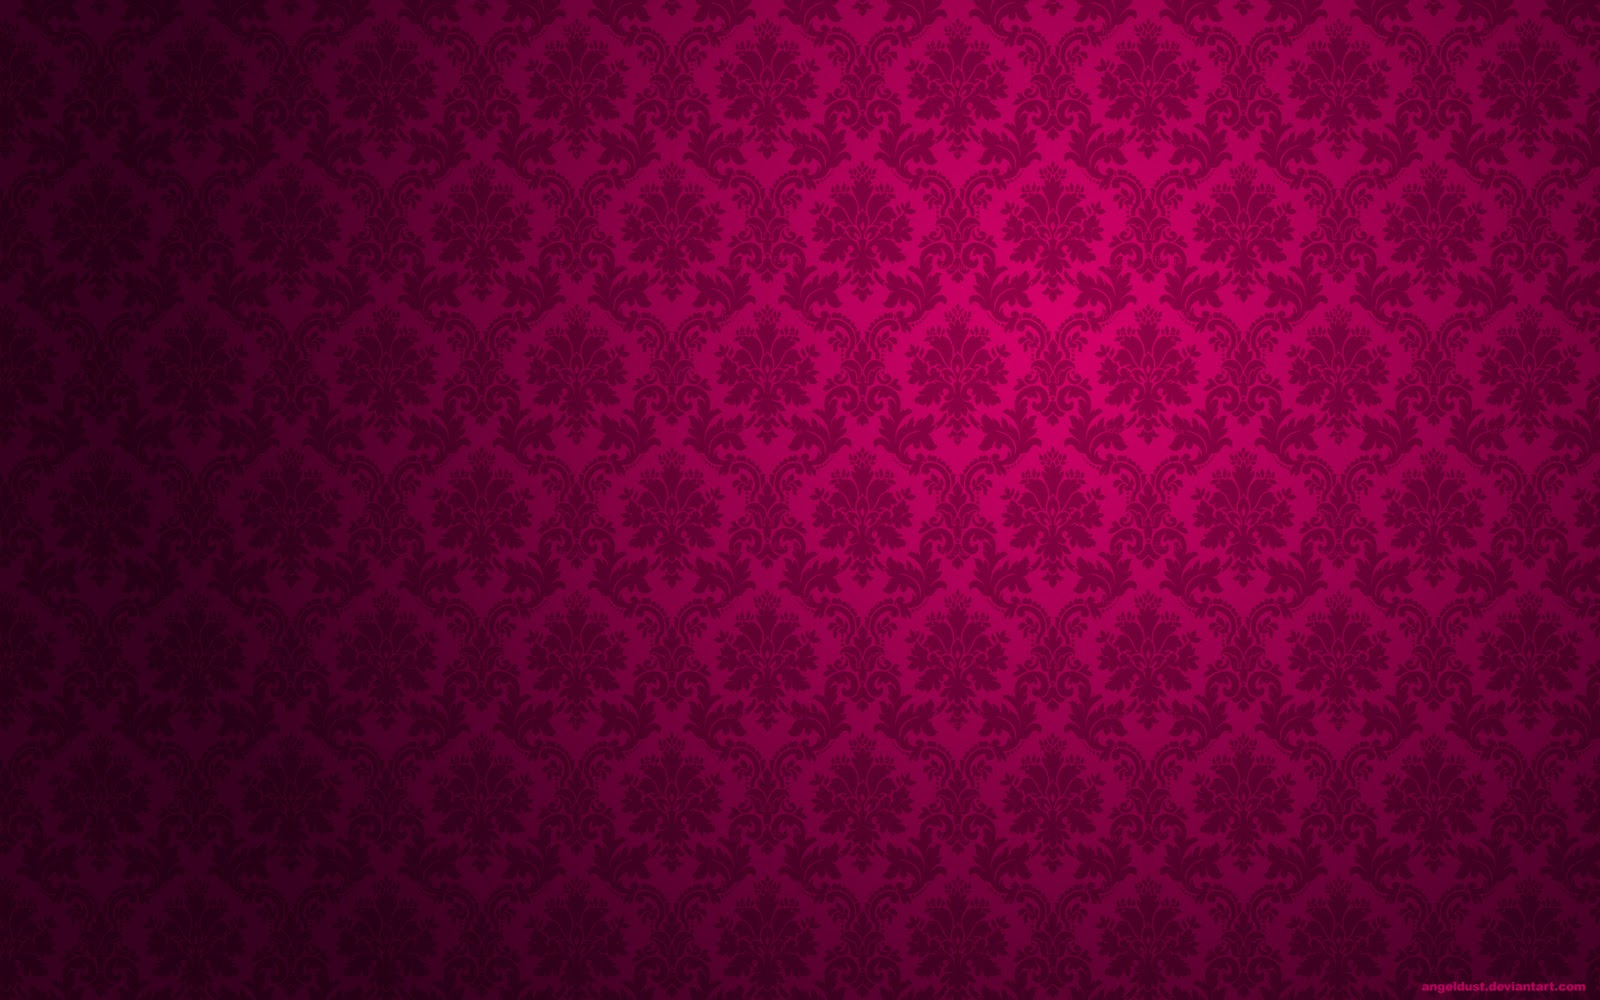 Damask Floral Design Wallpaper By Angeldustjpg